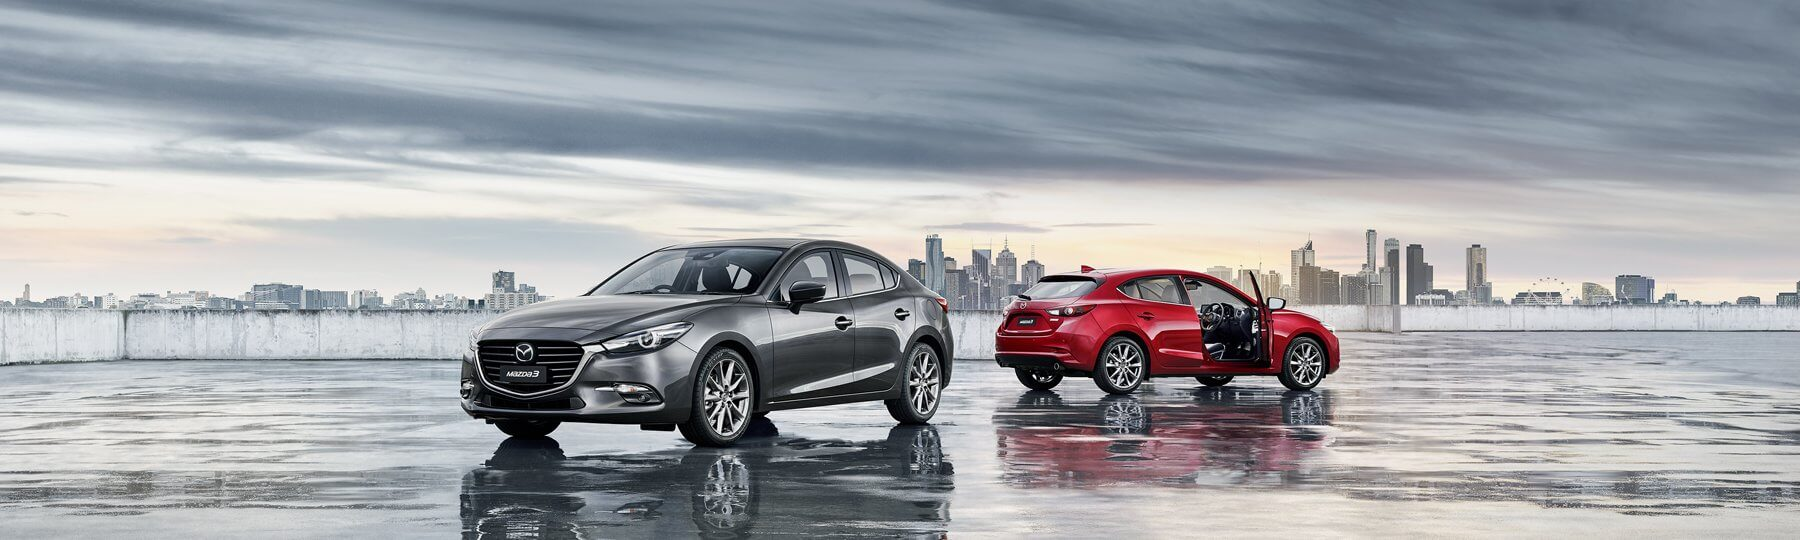 Buying A New Car Should I Buy A New Or Demonstrator Car Brighton Mazda